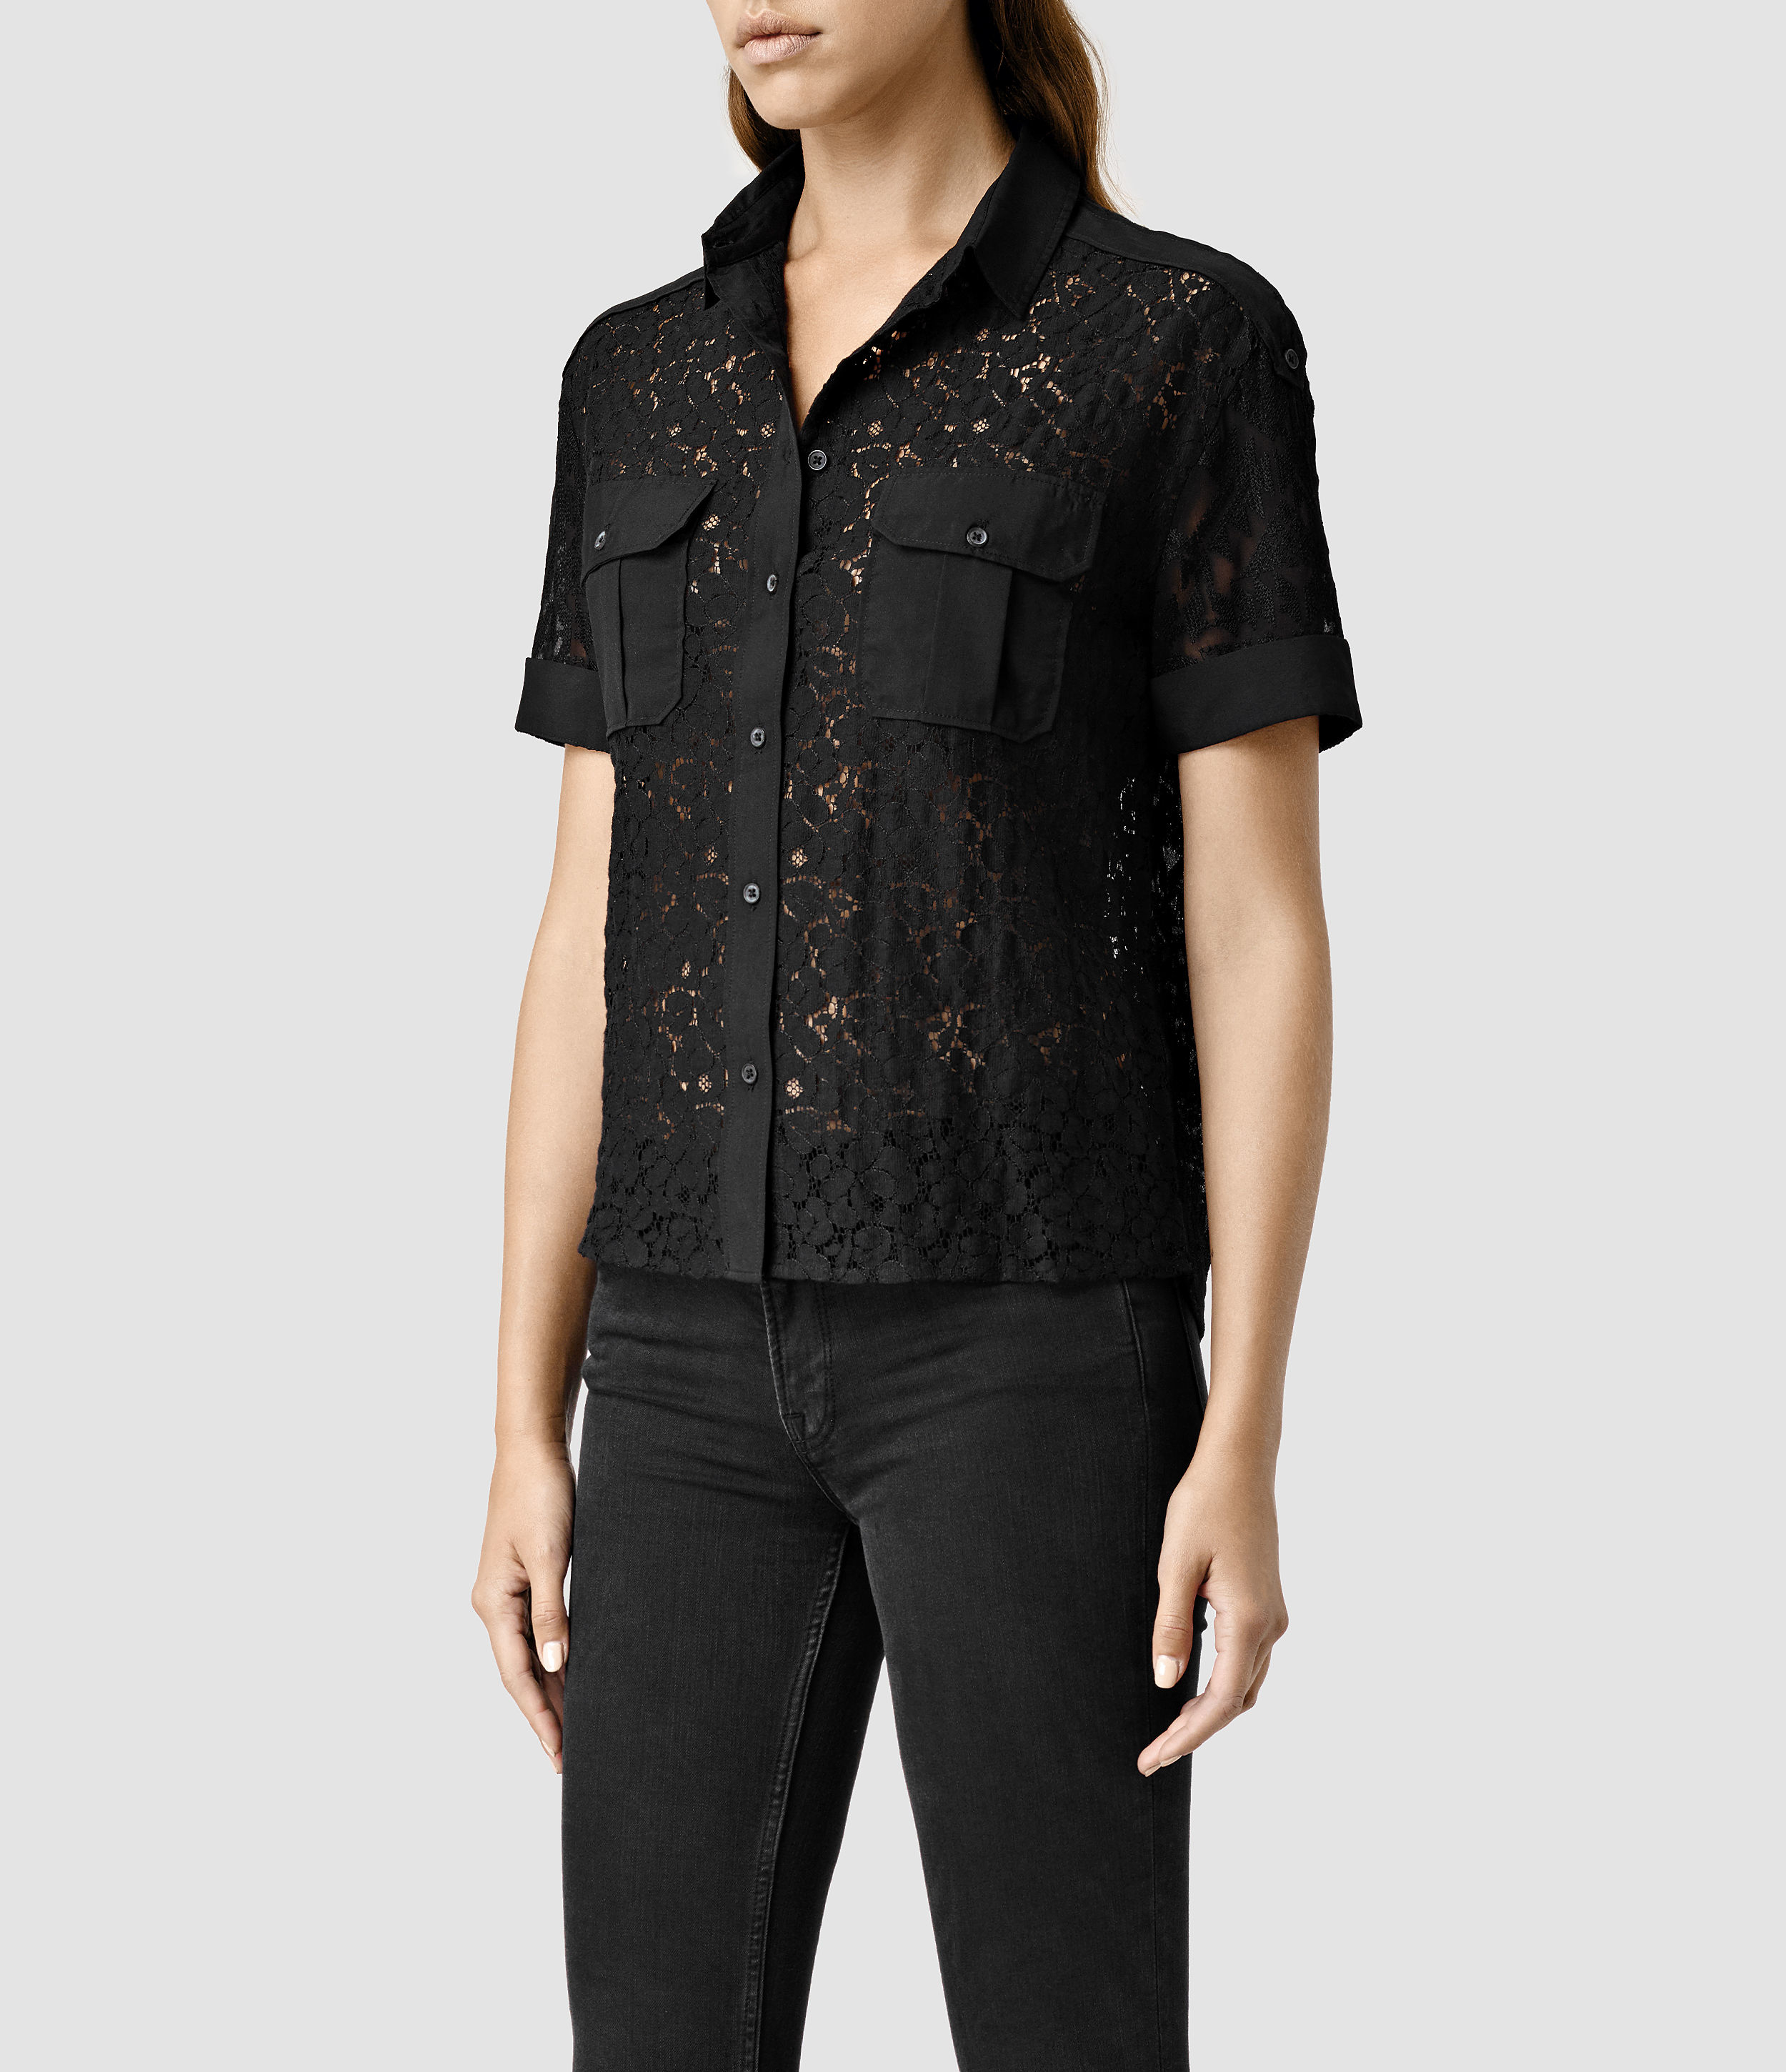 Allsaints Delliance Embroidered Pocket Shirt In Black  Lyst